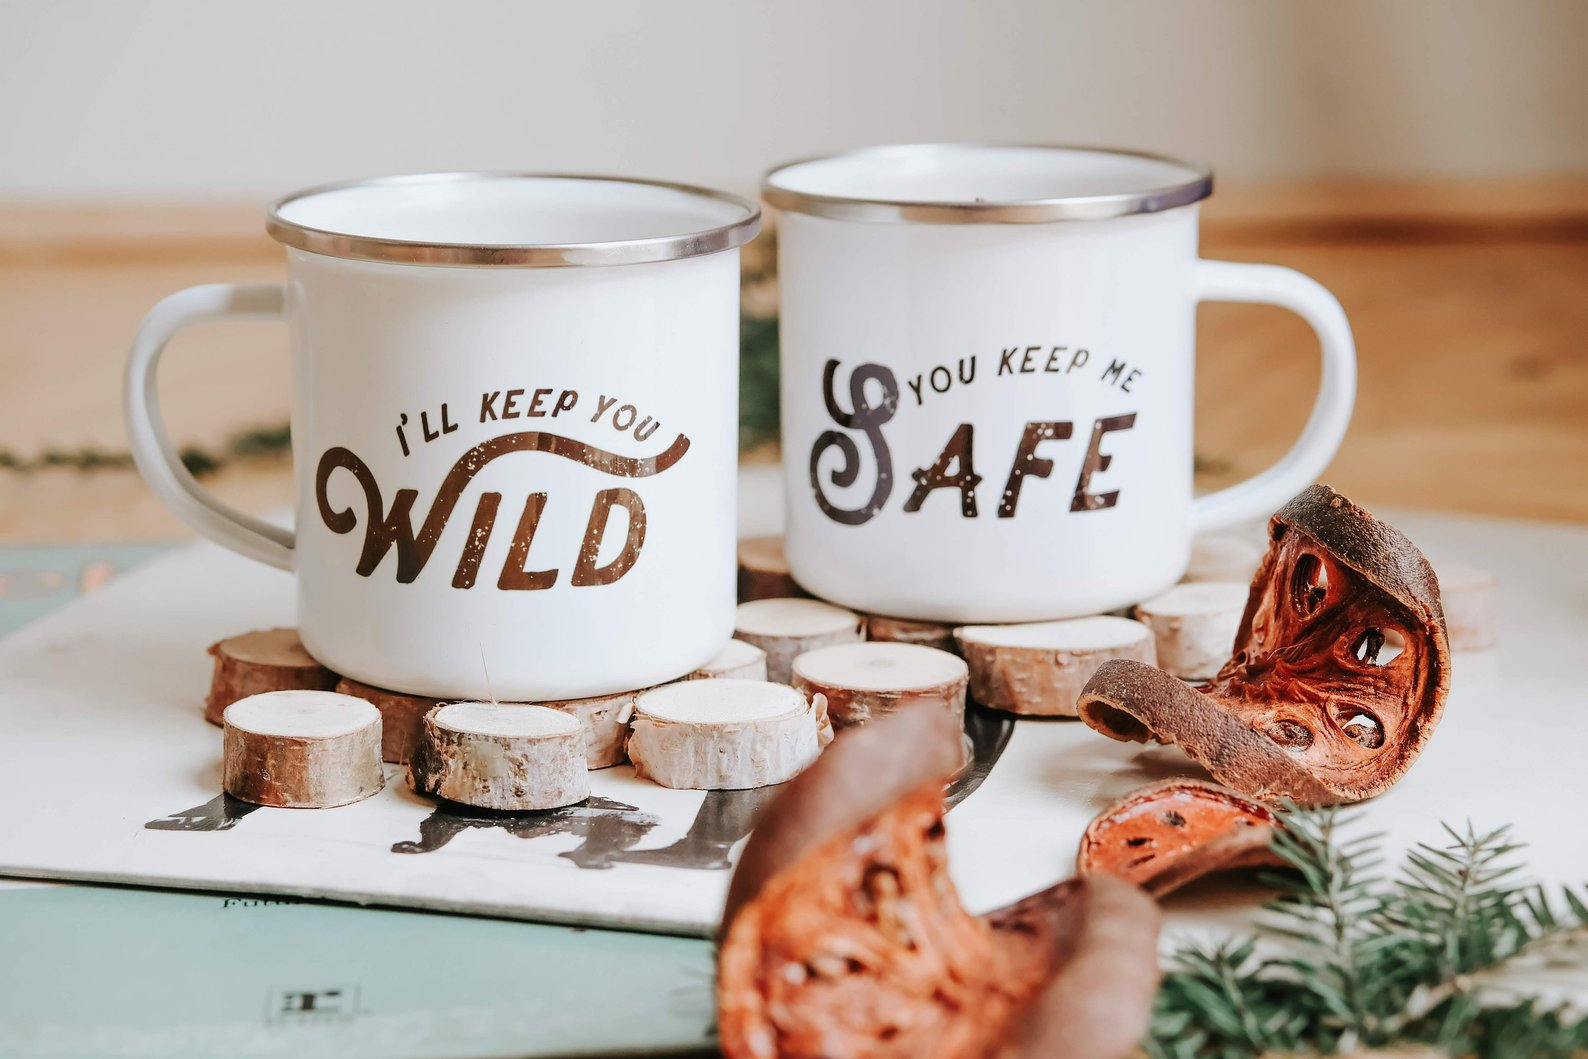 You Keep Me Safe I'll Keep You Wild Camp Mug Set By Brave Girl Club By Brave Girl Club